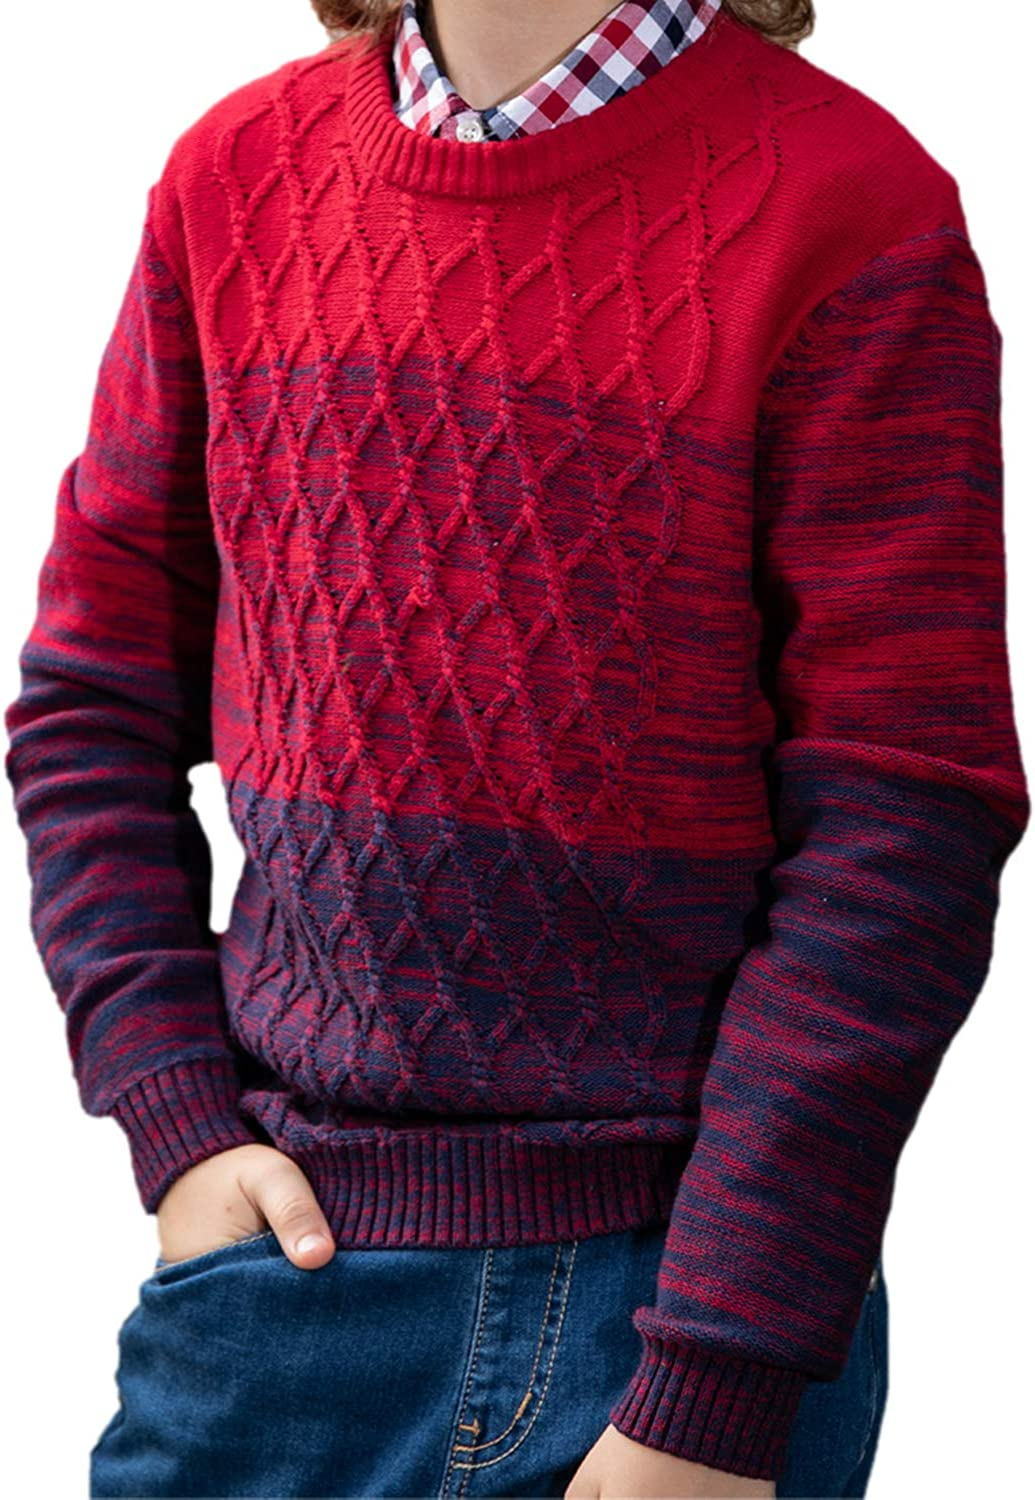 BOBOYOYO Boys Sweater Pullover Kids Long Sleeve Round Neck Cotton Cable Knit Sweater Casual Wearing for Size 5-14Y